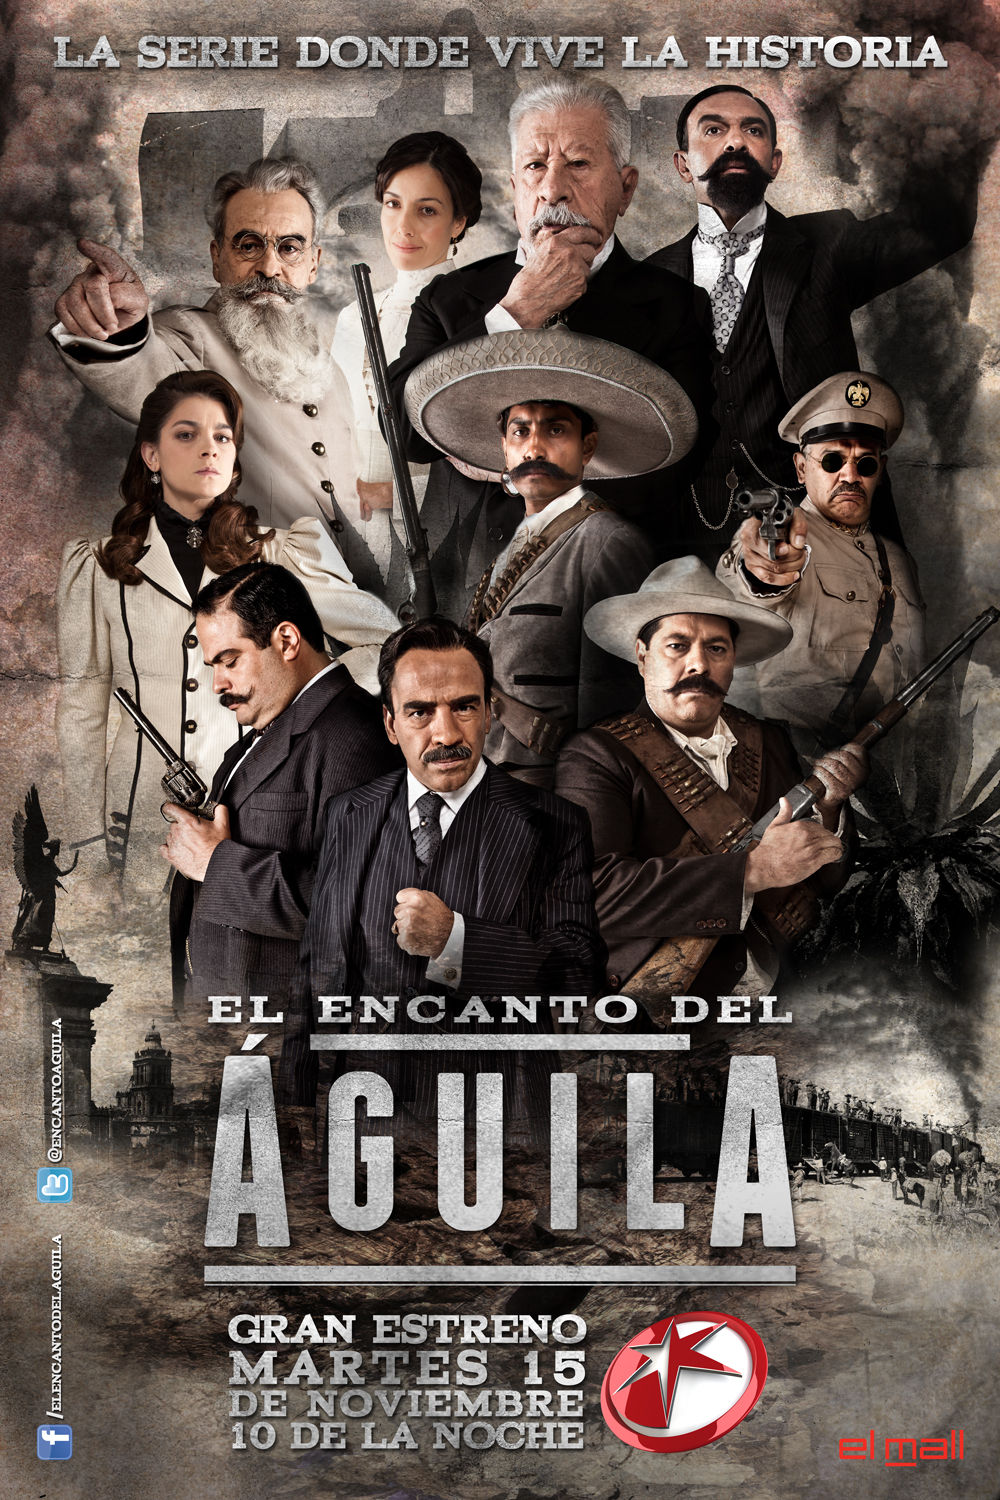 El Encanto del Aguila / Title sequence & Marketing campaign